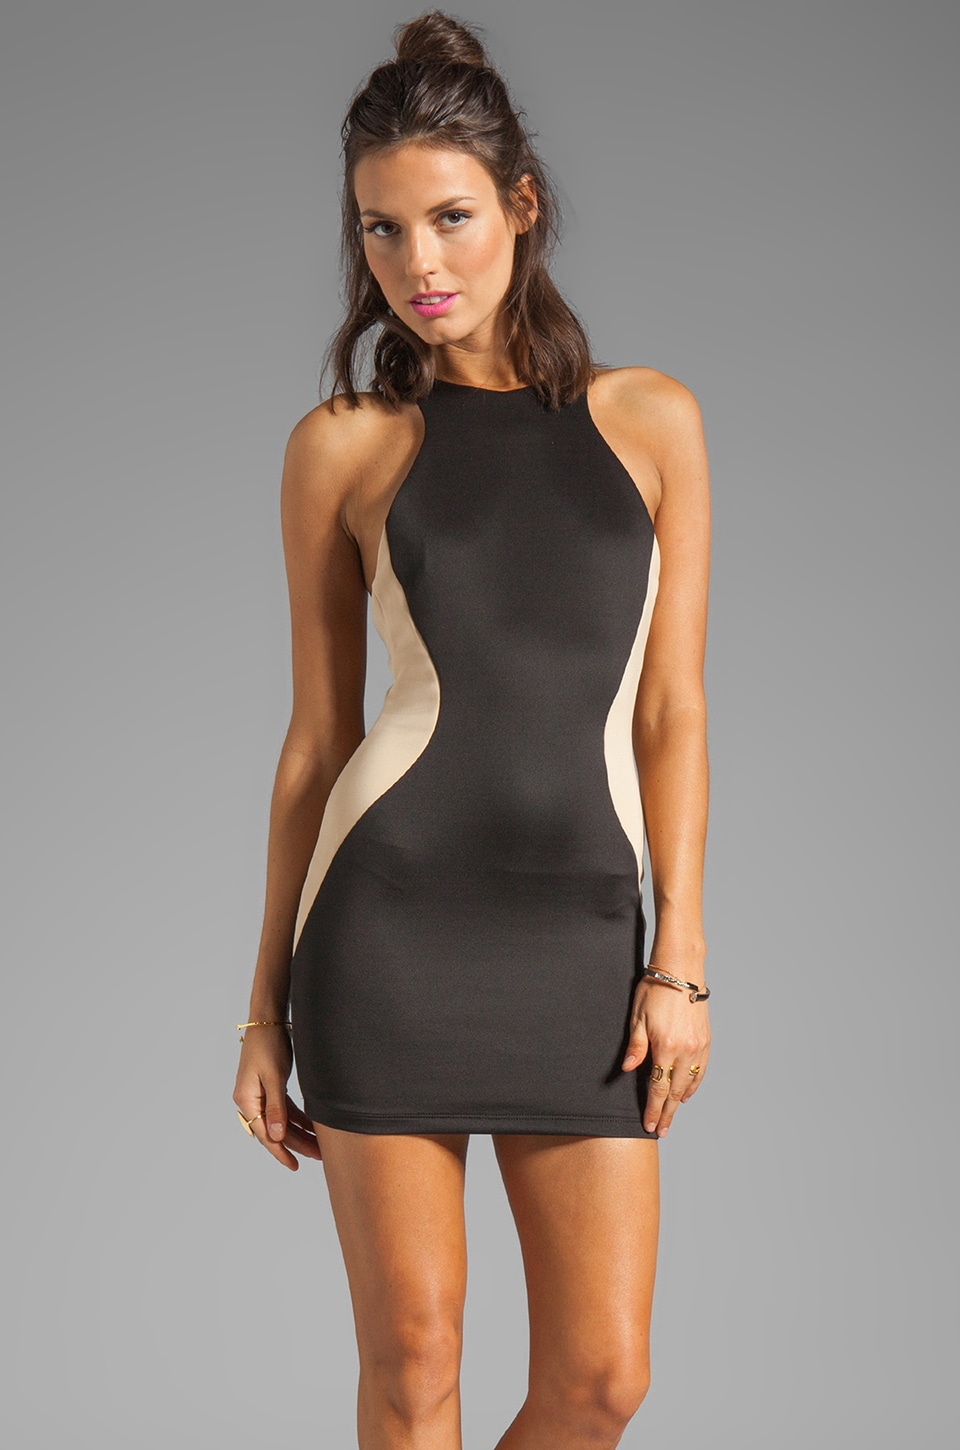 Boulee Jada Dress in Black